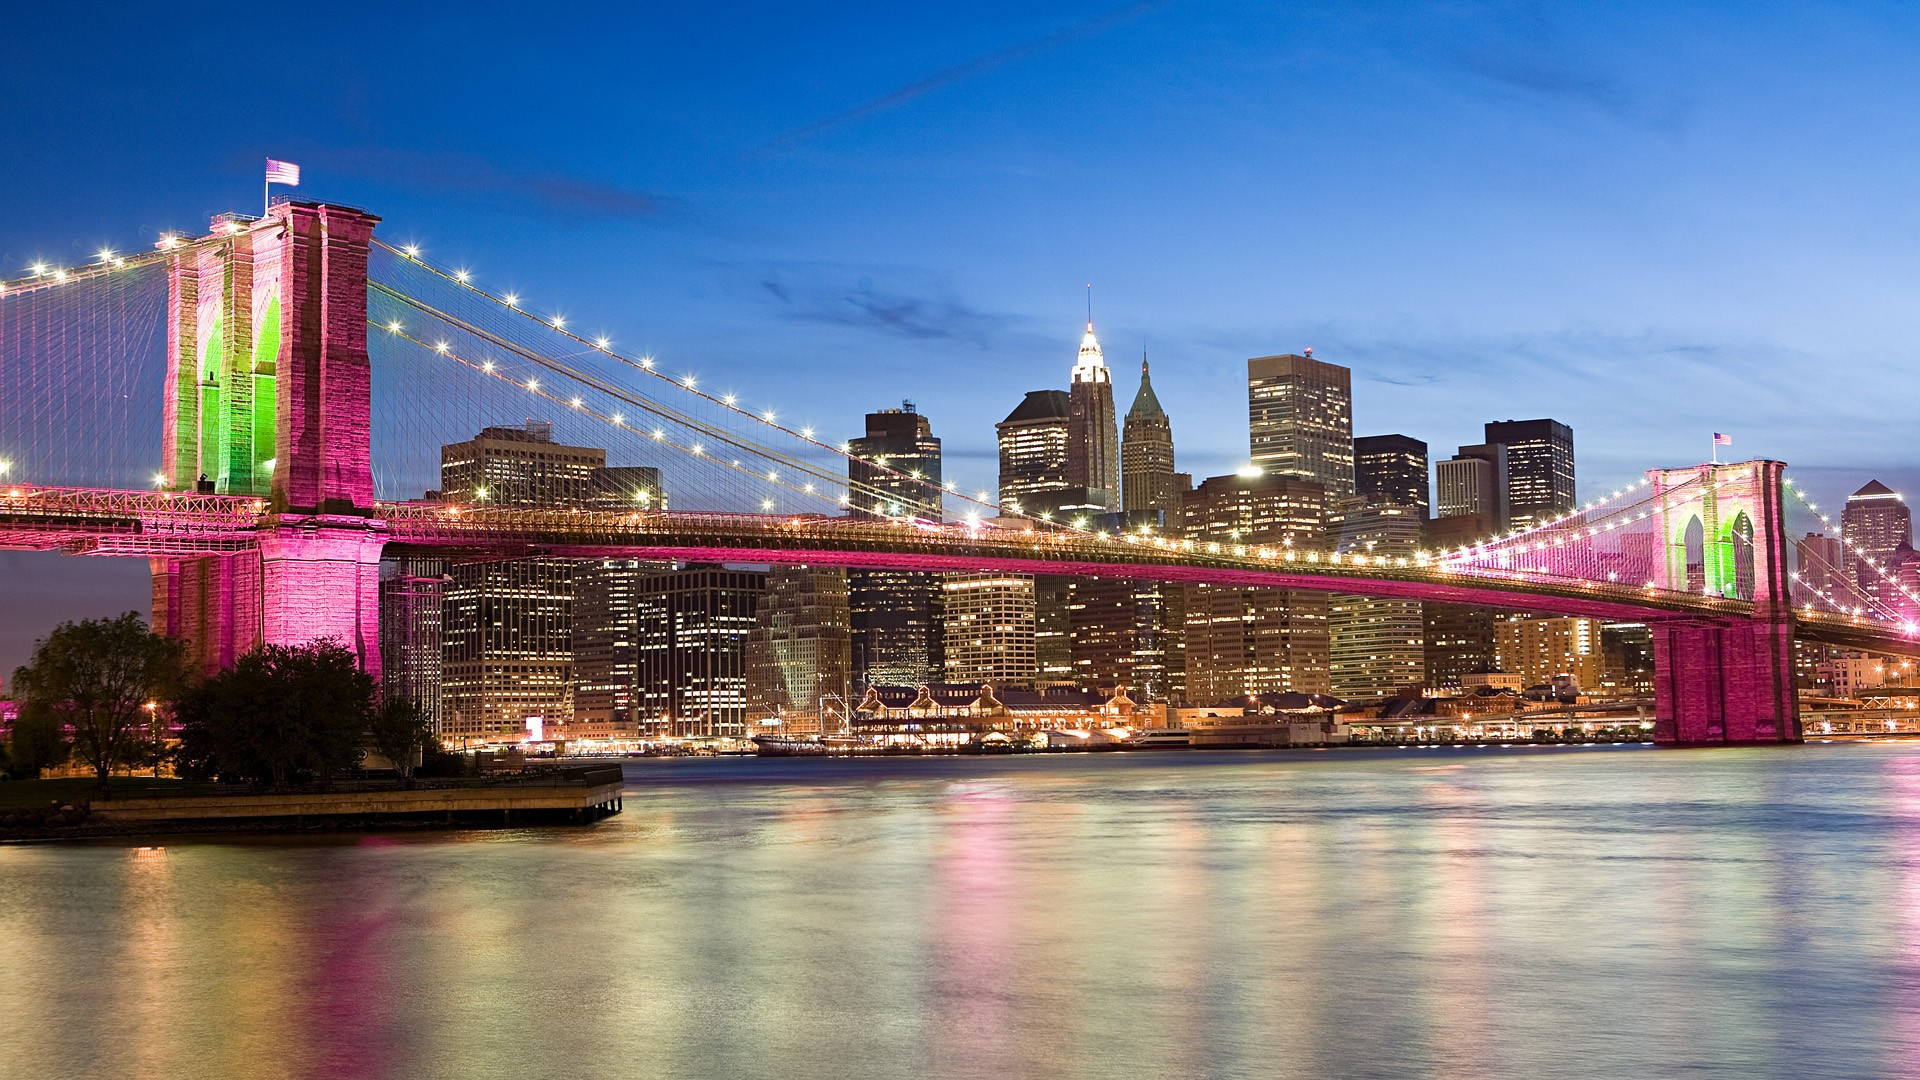 General 1920x1080 USA New York City bridge Brooklyn Bridge sea architecture pink city cityscape